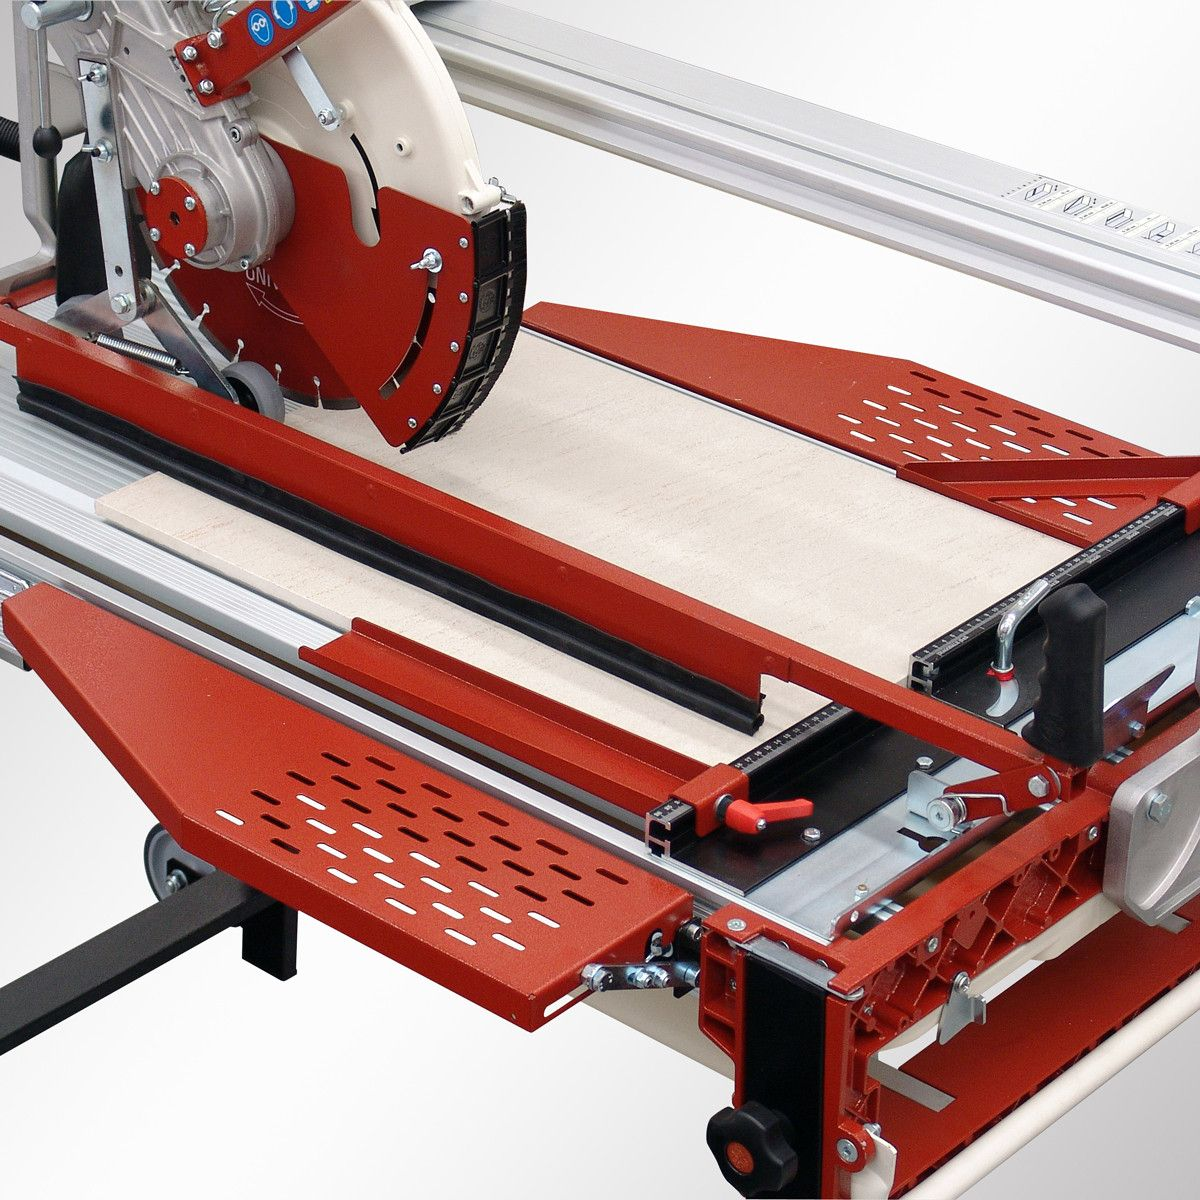 Home Rail Saw Tiler Brick Saw